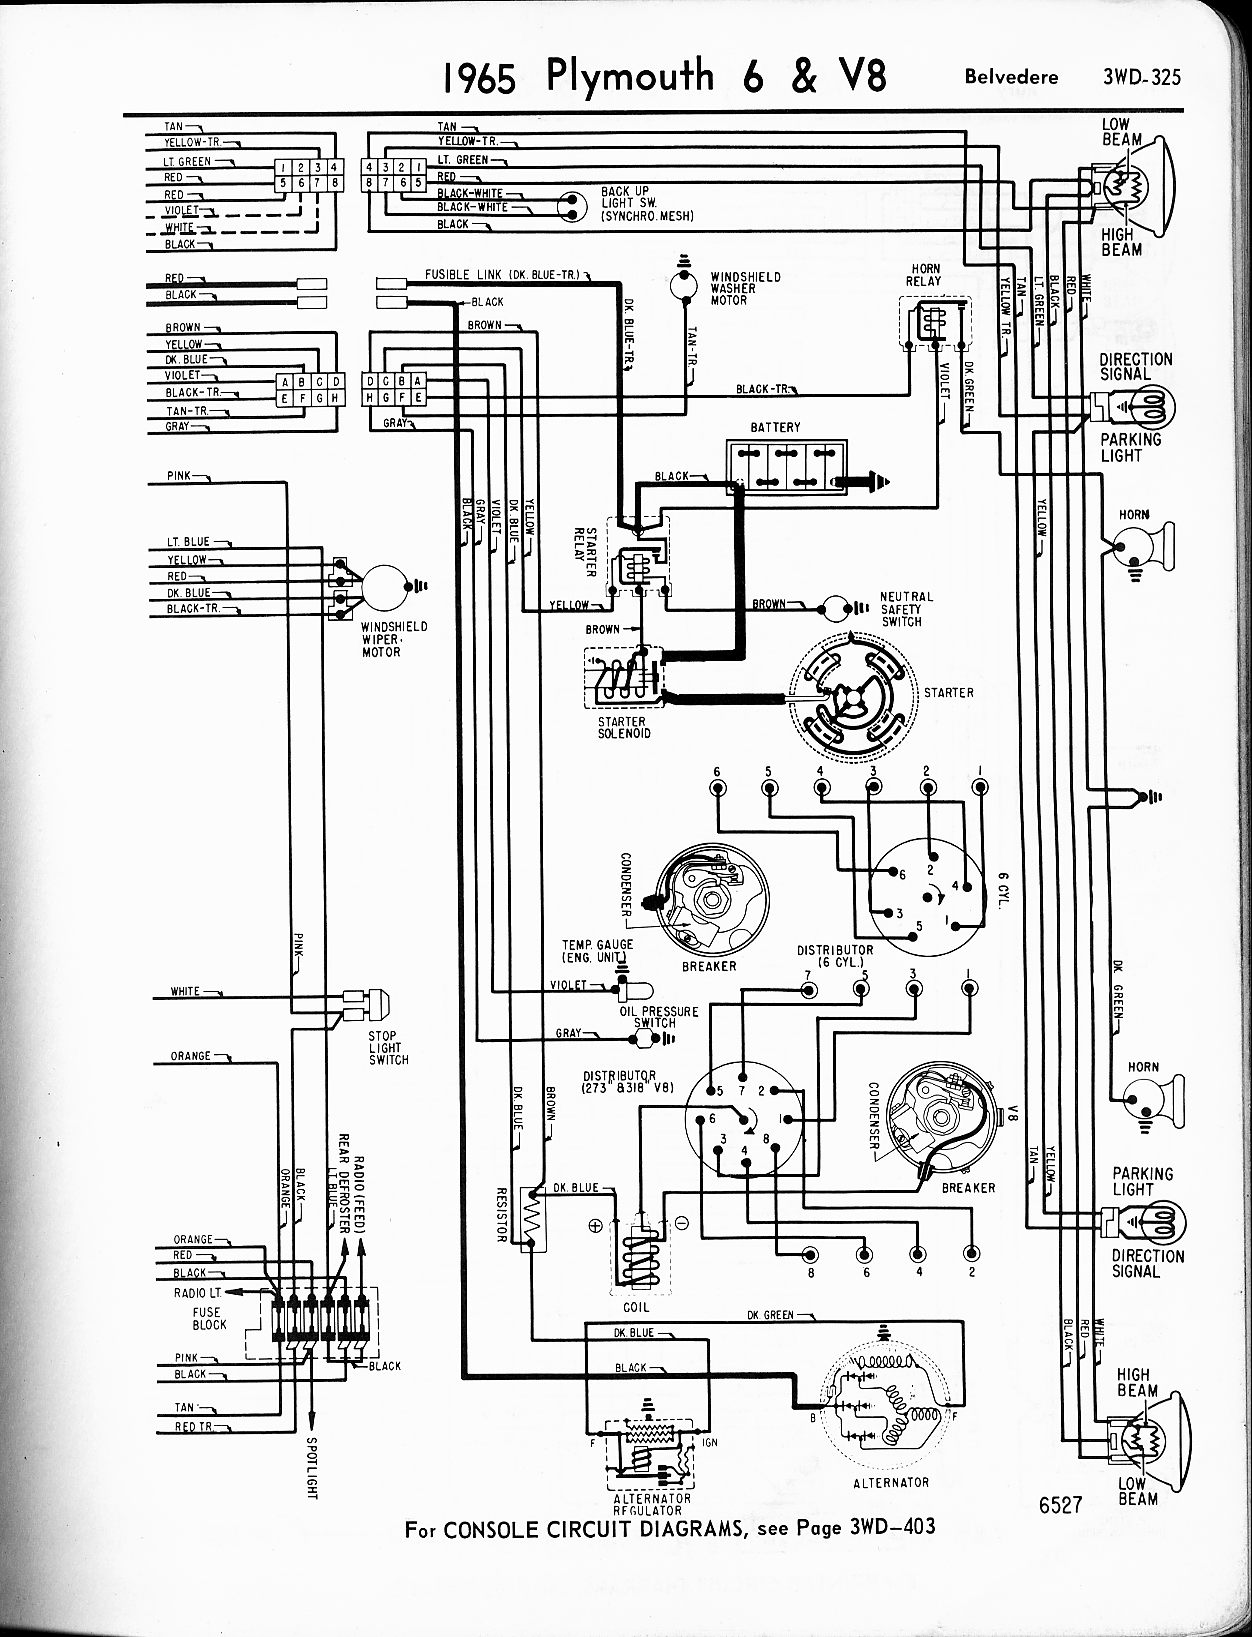 1960 Plymouth Belvedere Wiring Reinvent Your Diagram Dodge 1956 1965 The Old Car Manual Project Rh Oldcarmanualproject Com 1962